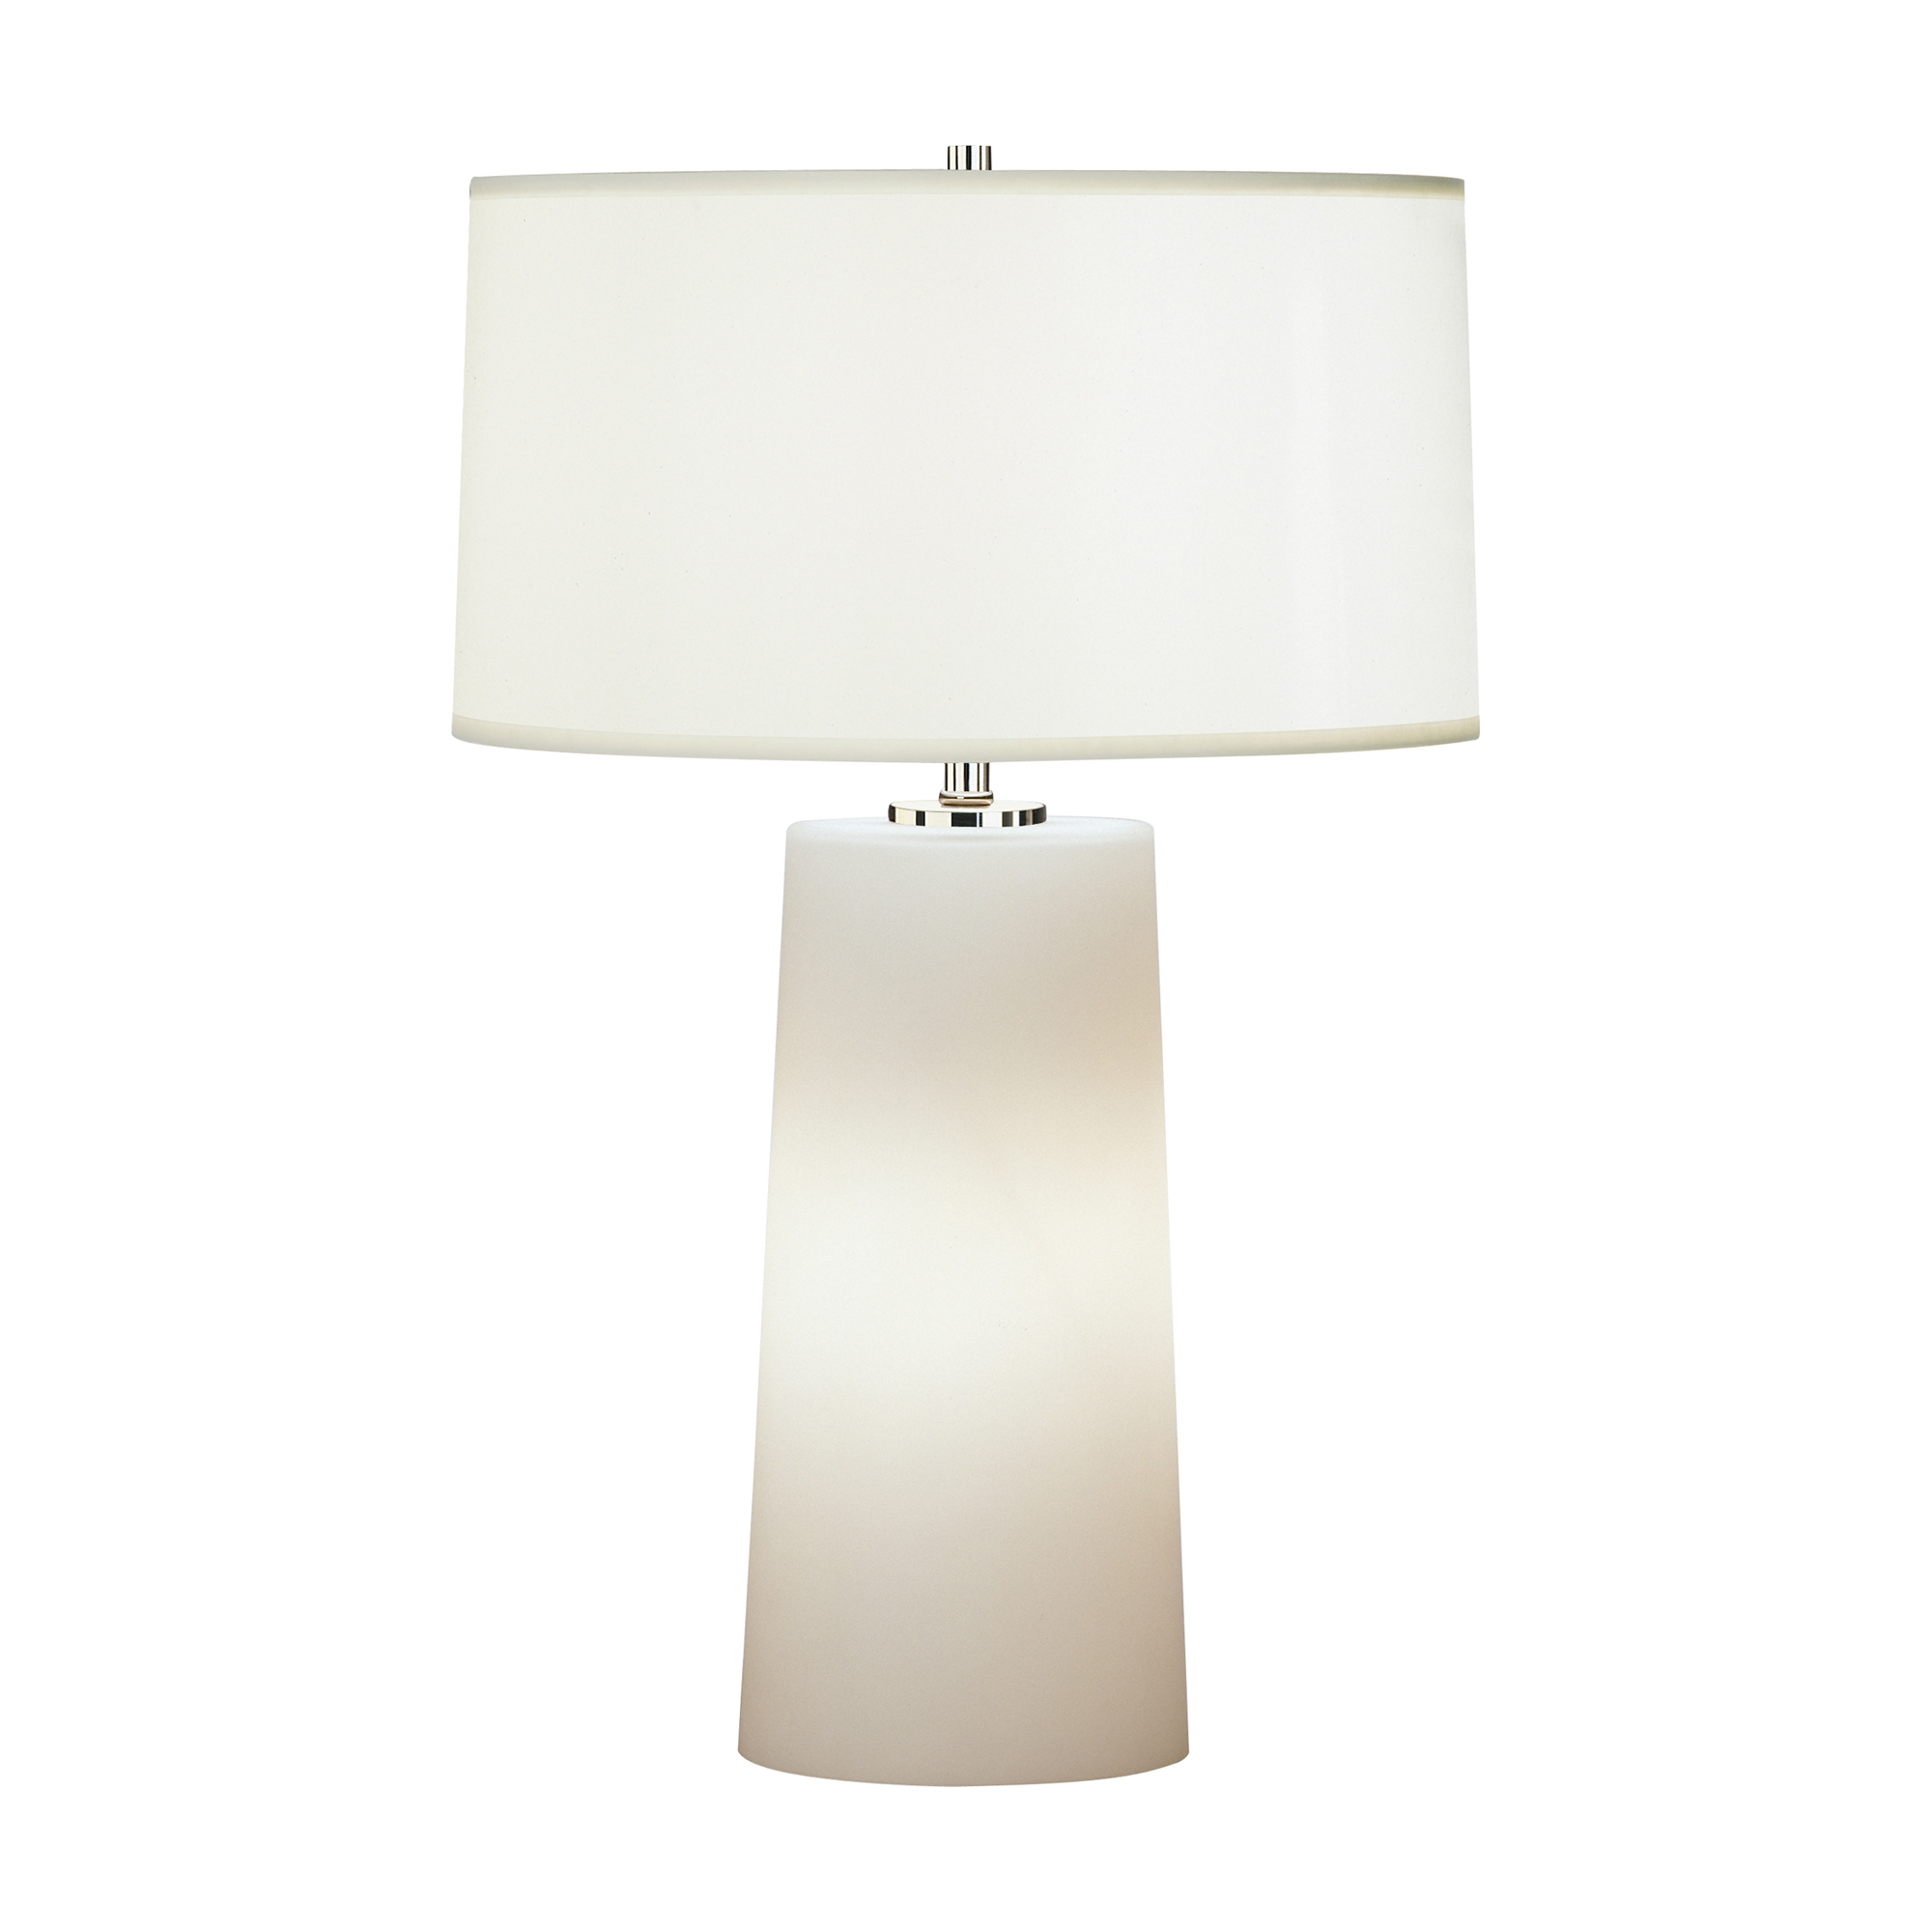 Rico Espinet Olinda Accent Lamp Style #1580W